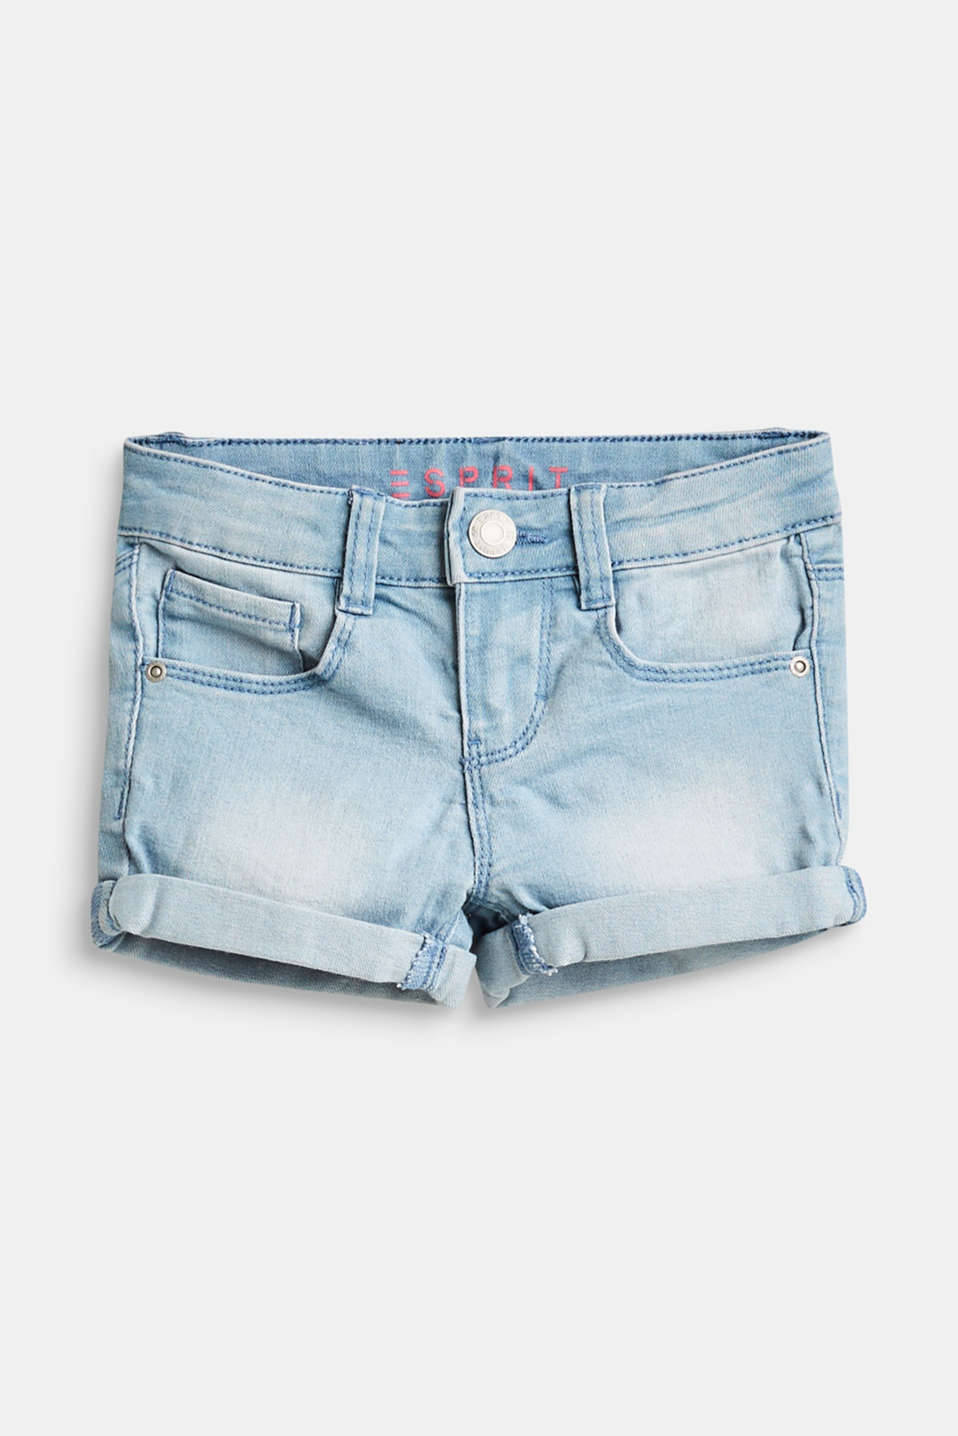 Esprit - Stretch-Jeans-Shorts mit Washed-Effekten